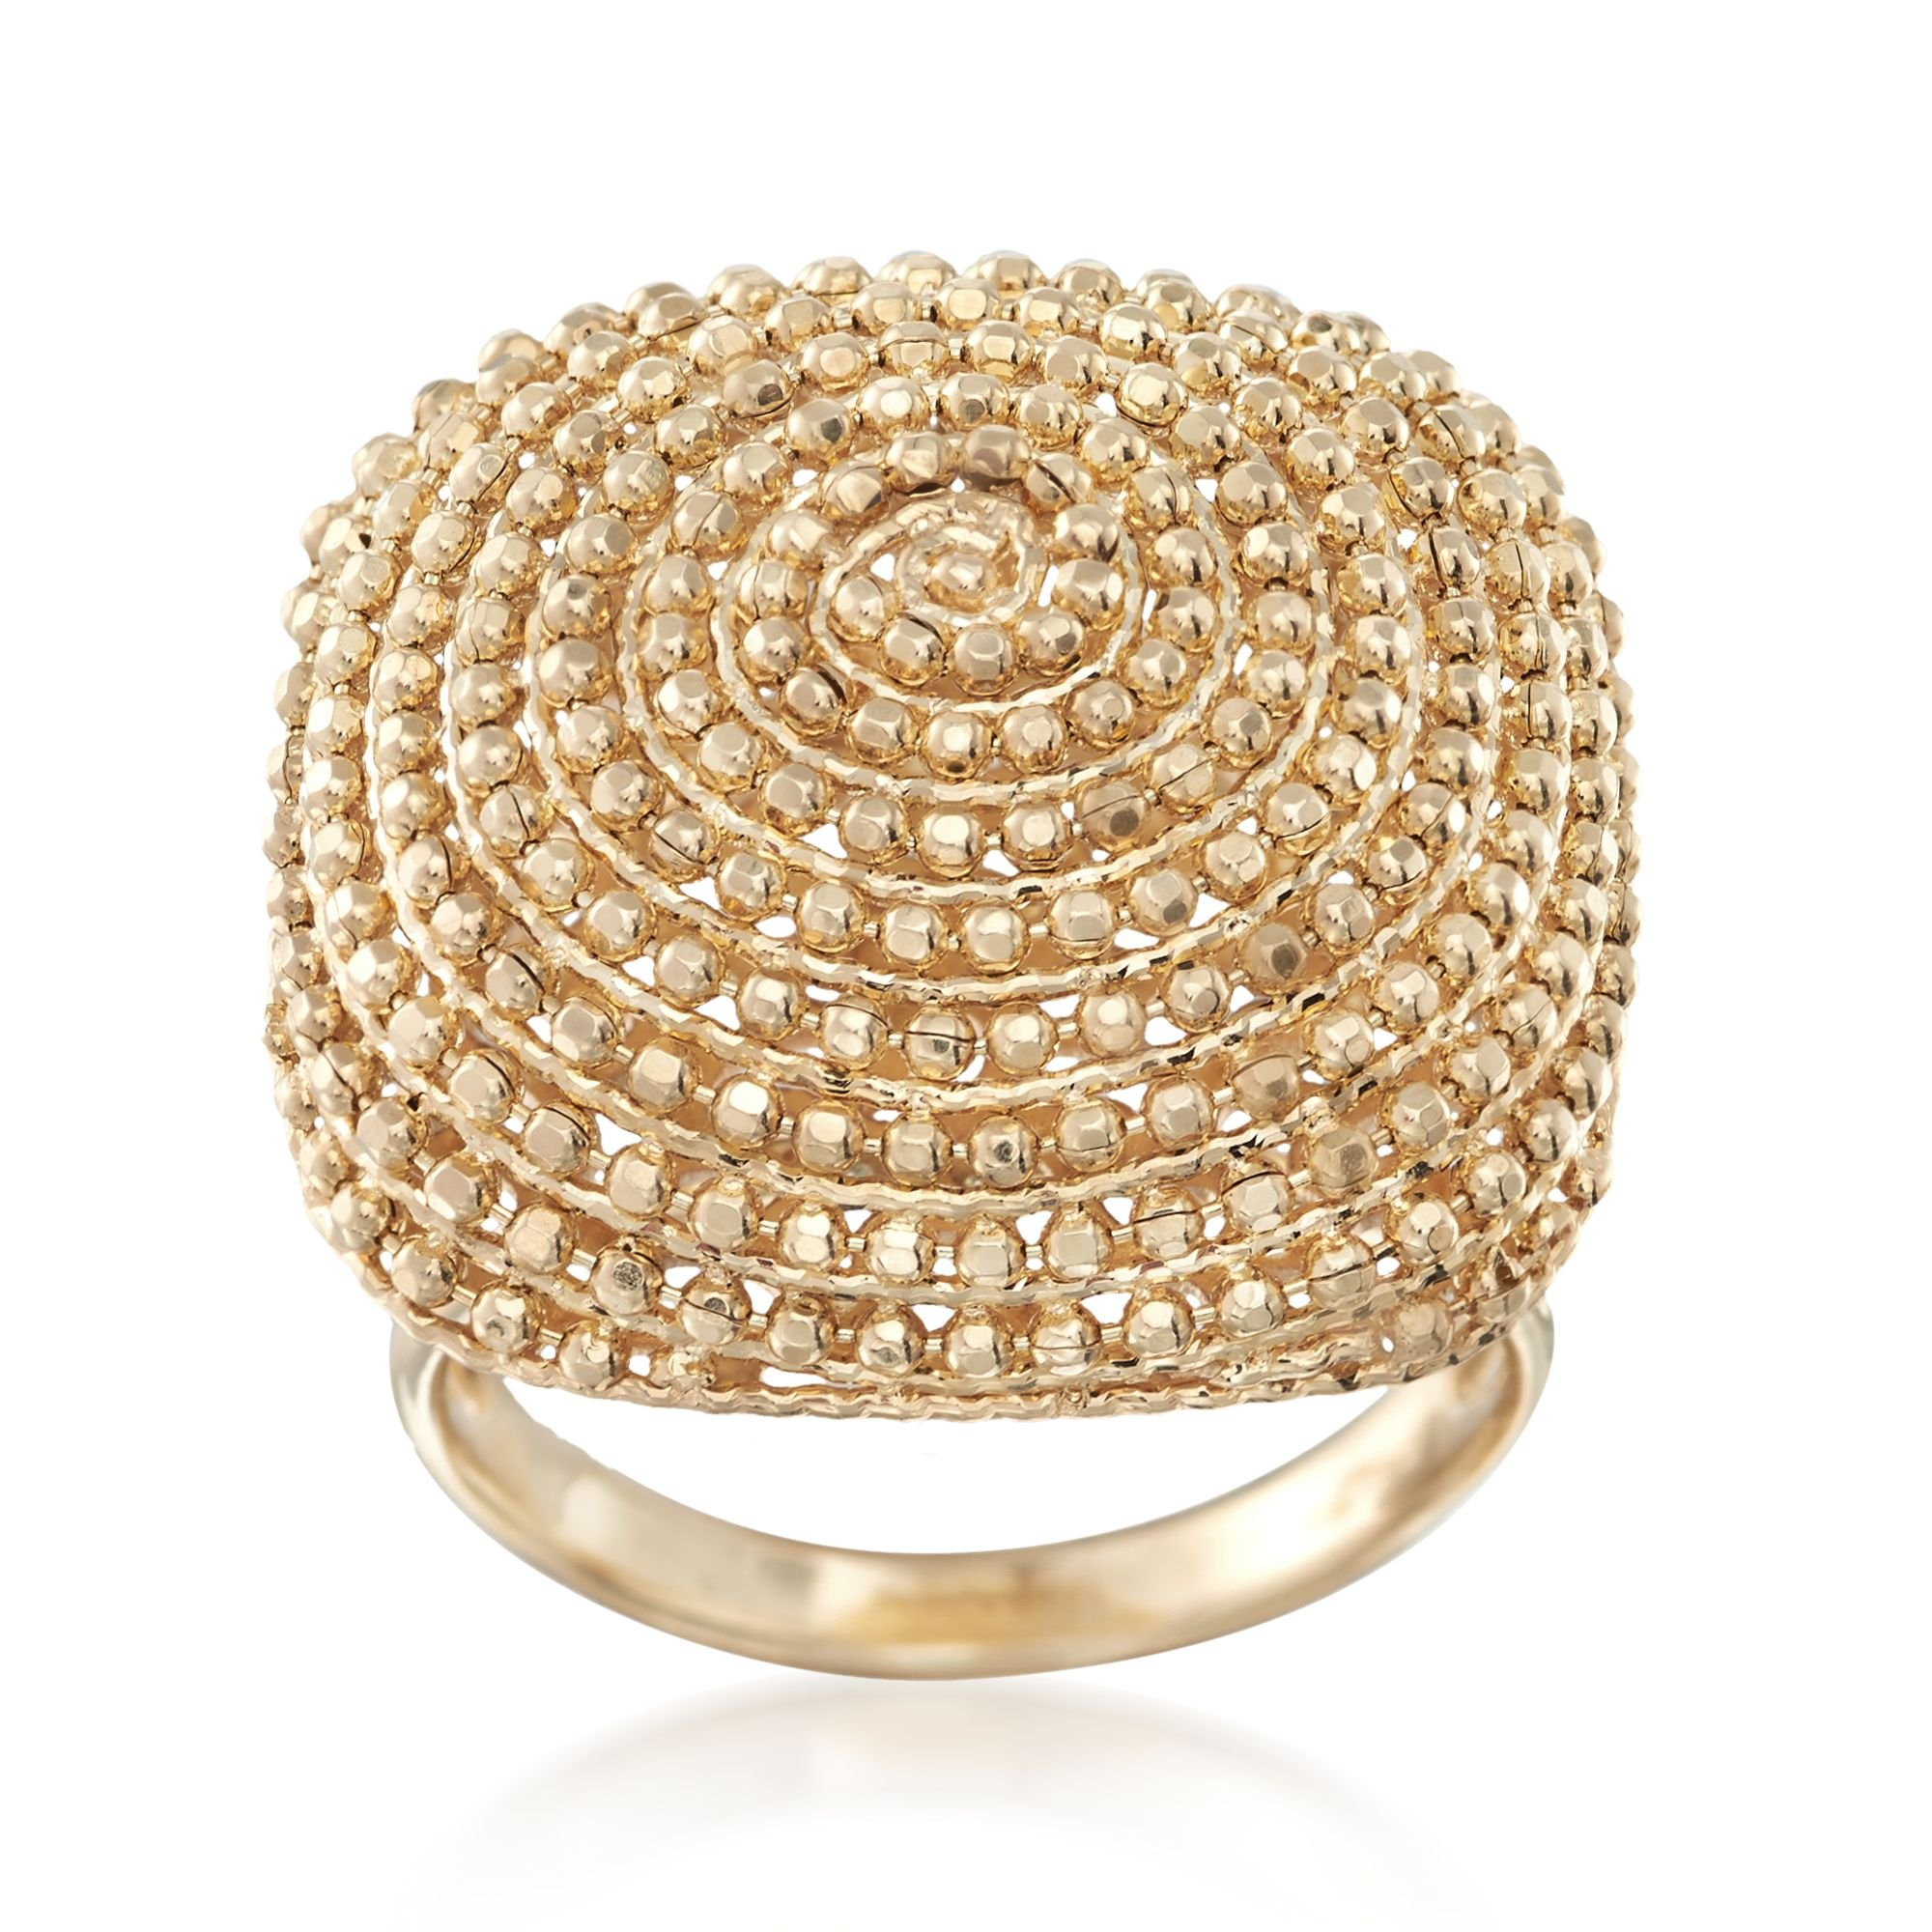 Ross-Simons 14kt Yellow Gold Beaded Square-Top Ring